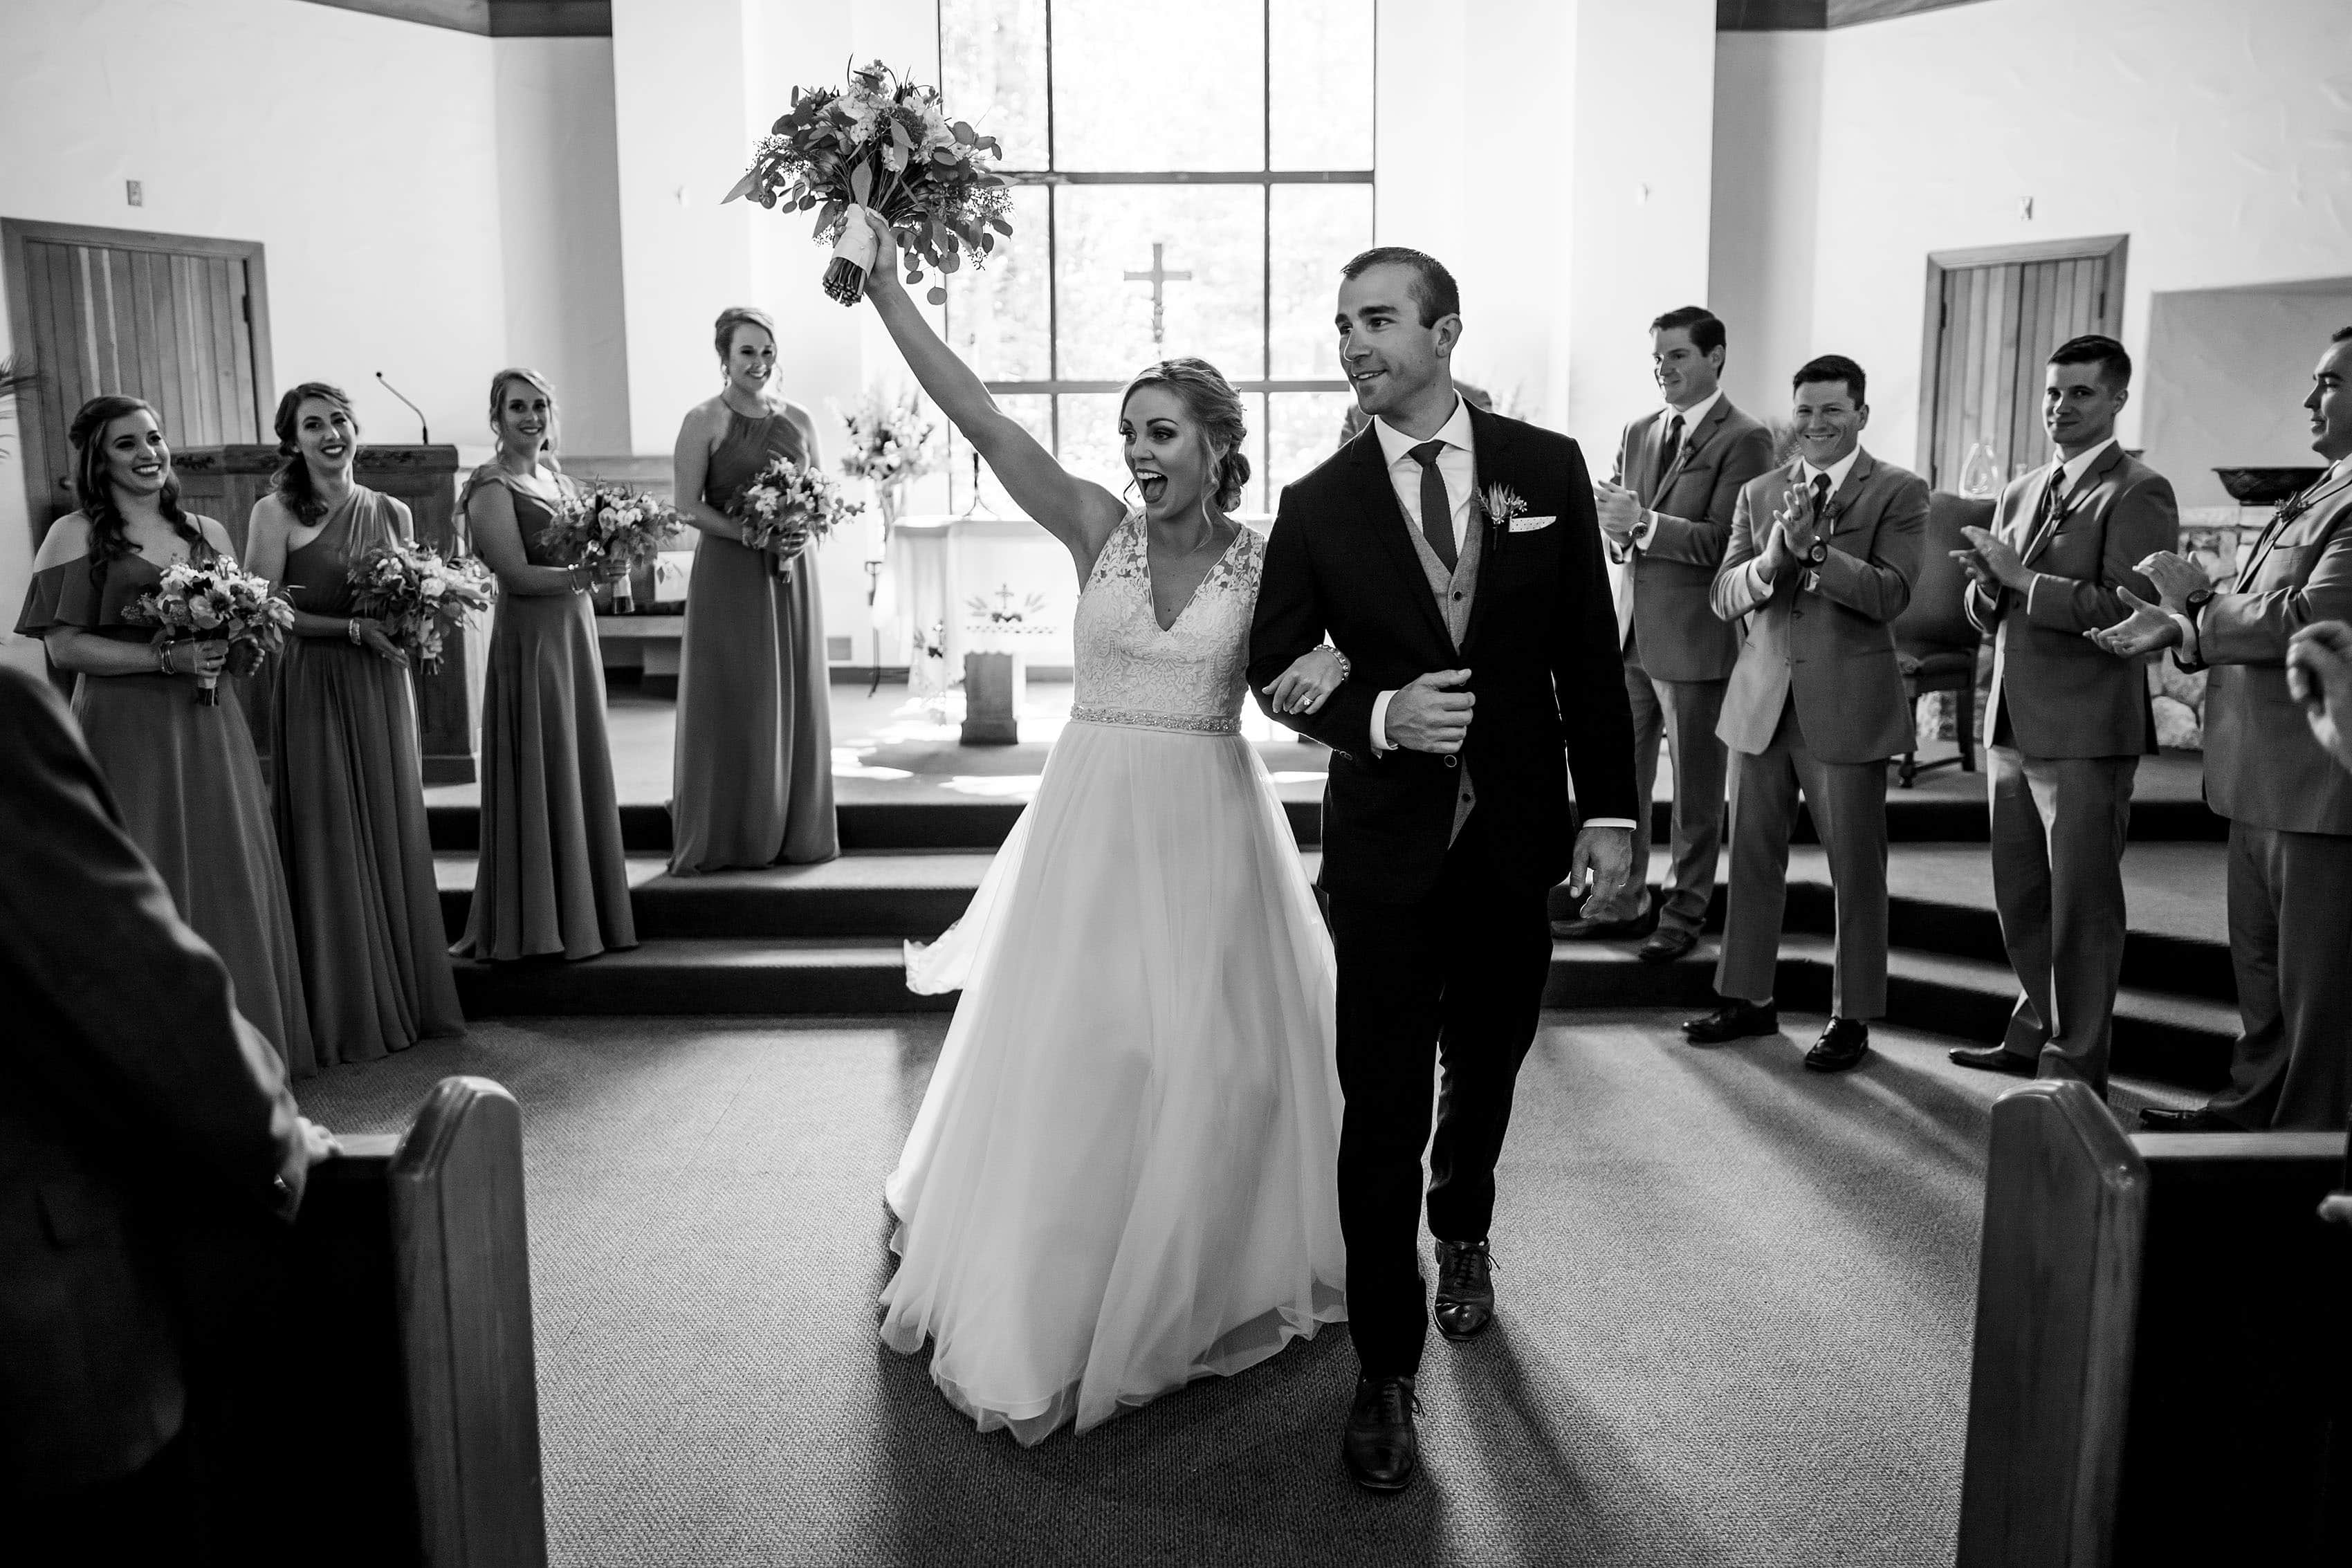 A couple celebrate during their mountain wedding at the Chapel at Beaver Creek